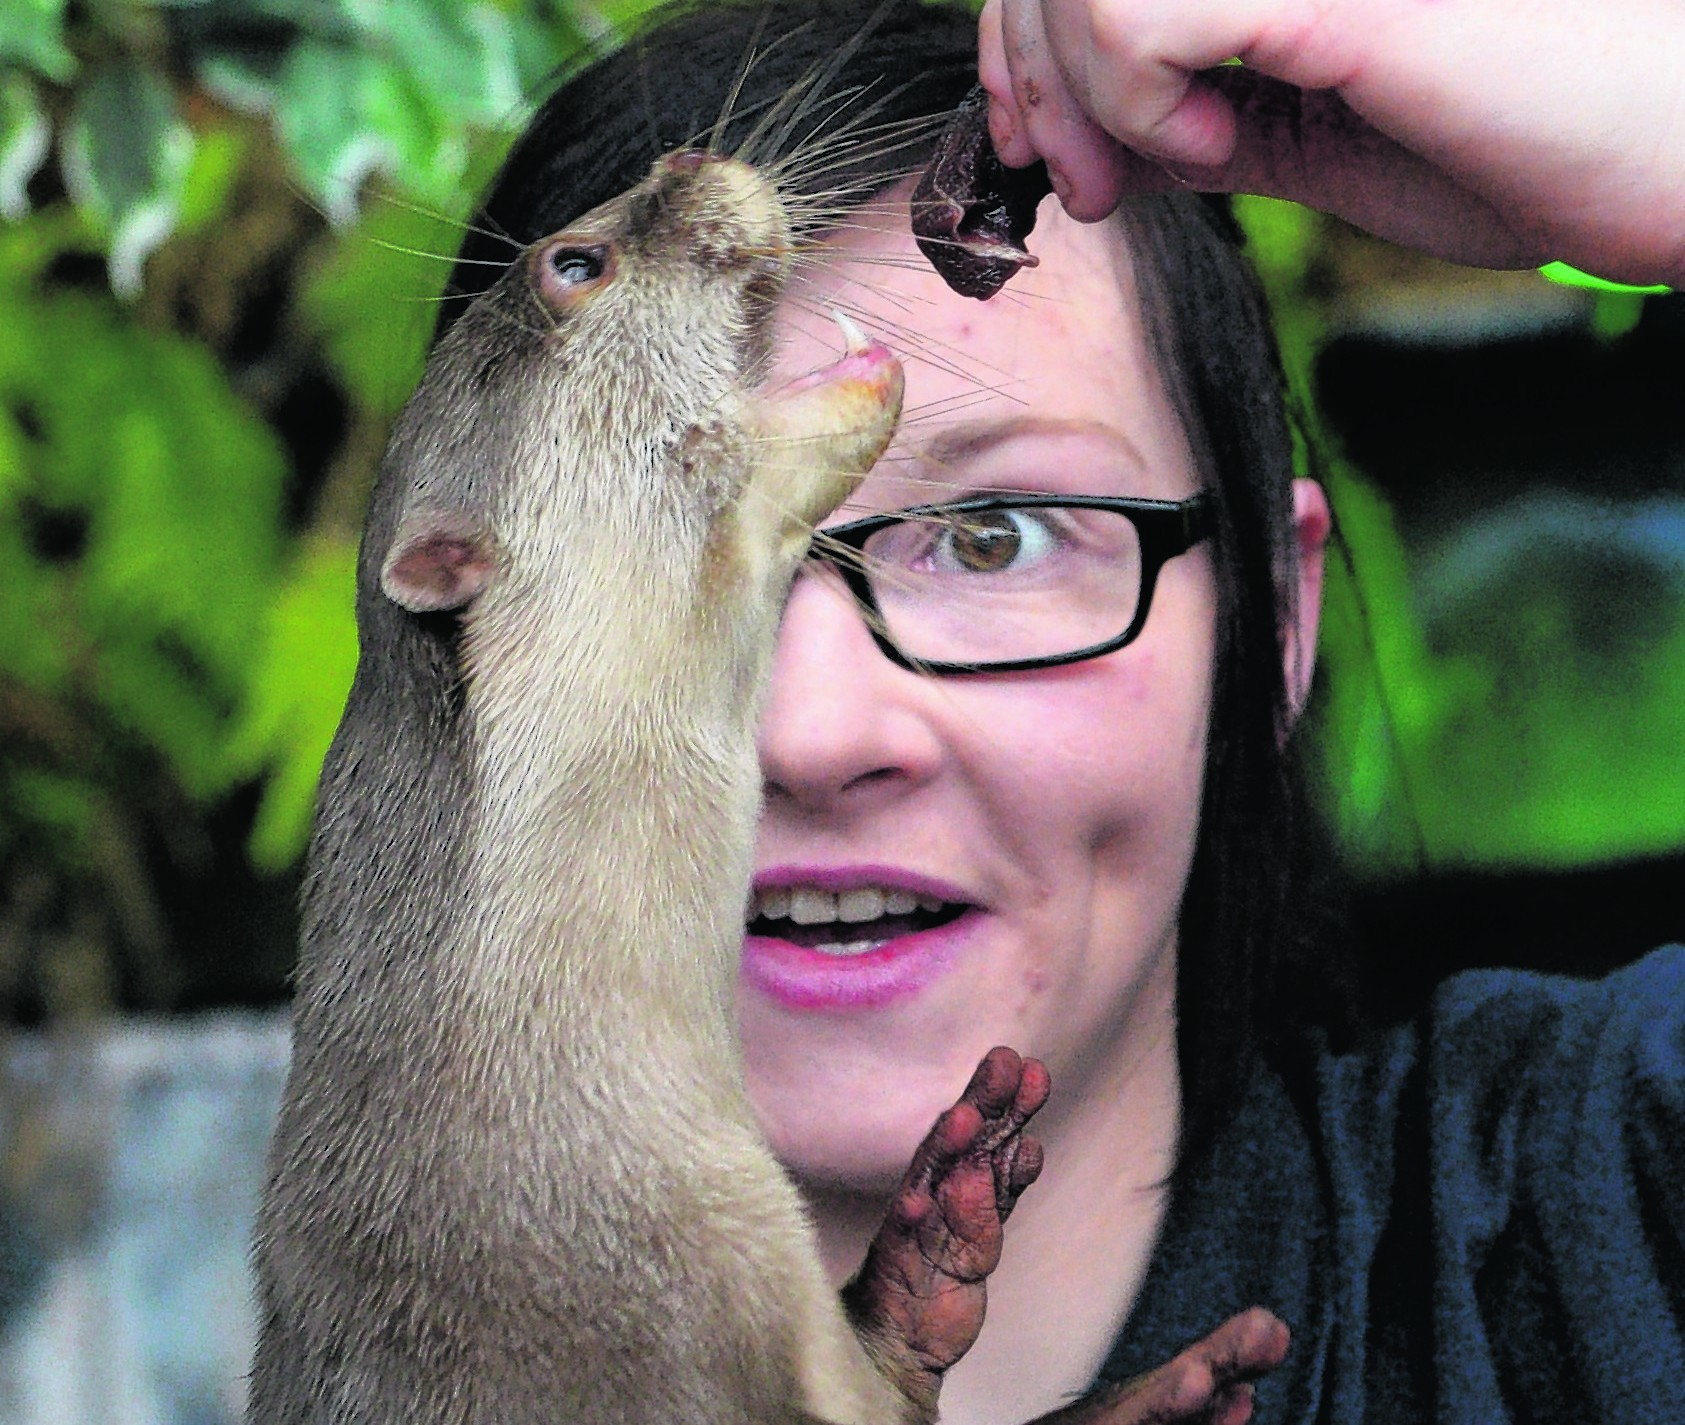 Robyn Hunter feeding one of the otters at Loch Lomond Sea Life Aquarium